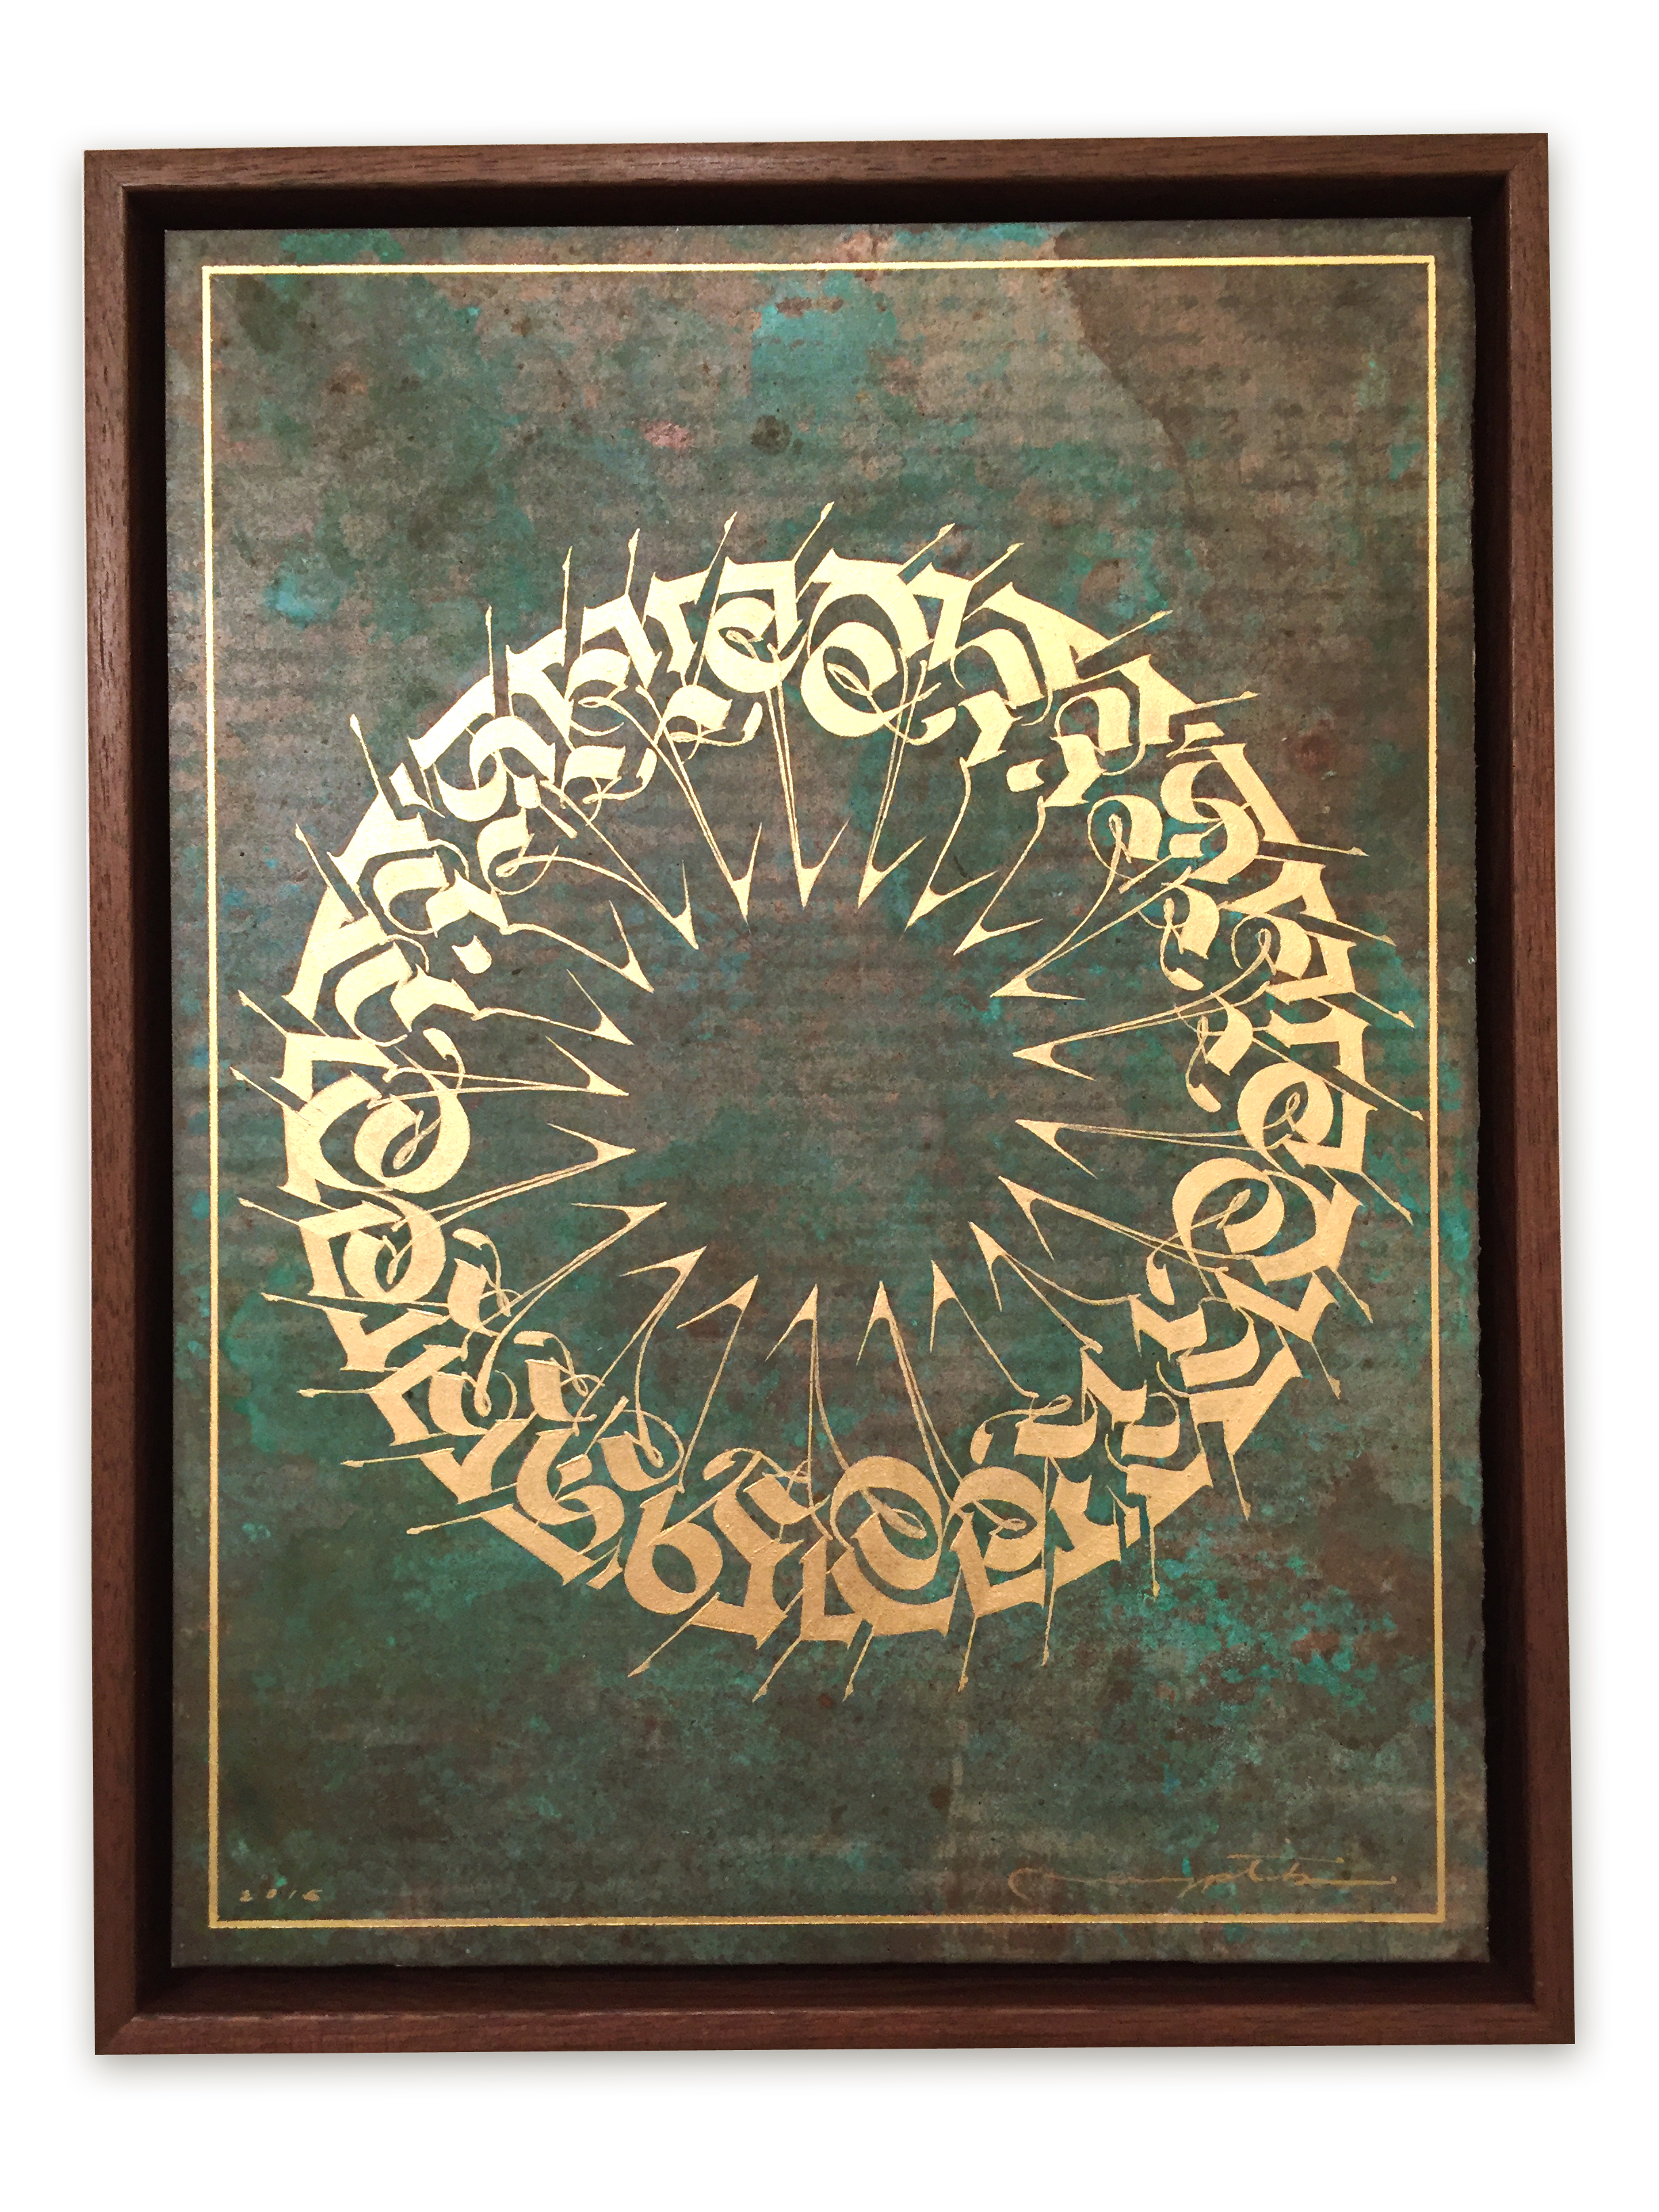 Cryptik  'Shanti' (2015)  9   x 12 x 2.25 Inches   Acrylic on Copper Patina Sheet, Framed   SOLD